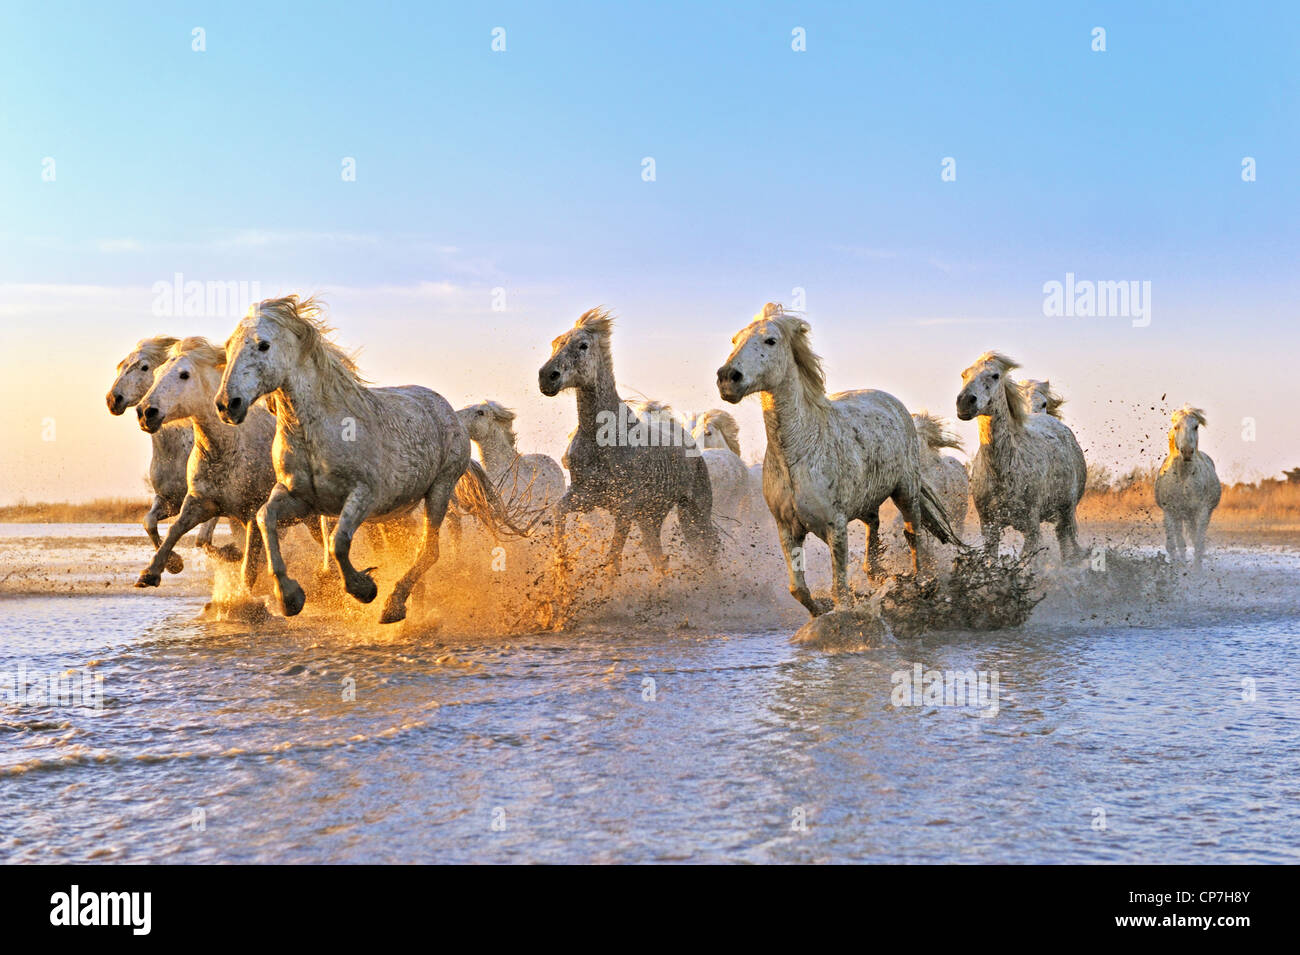 Cheval blanc dans la Camargue, France Photo Stock